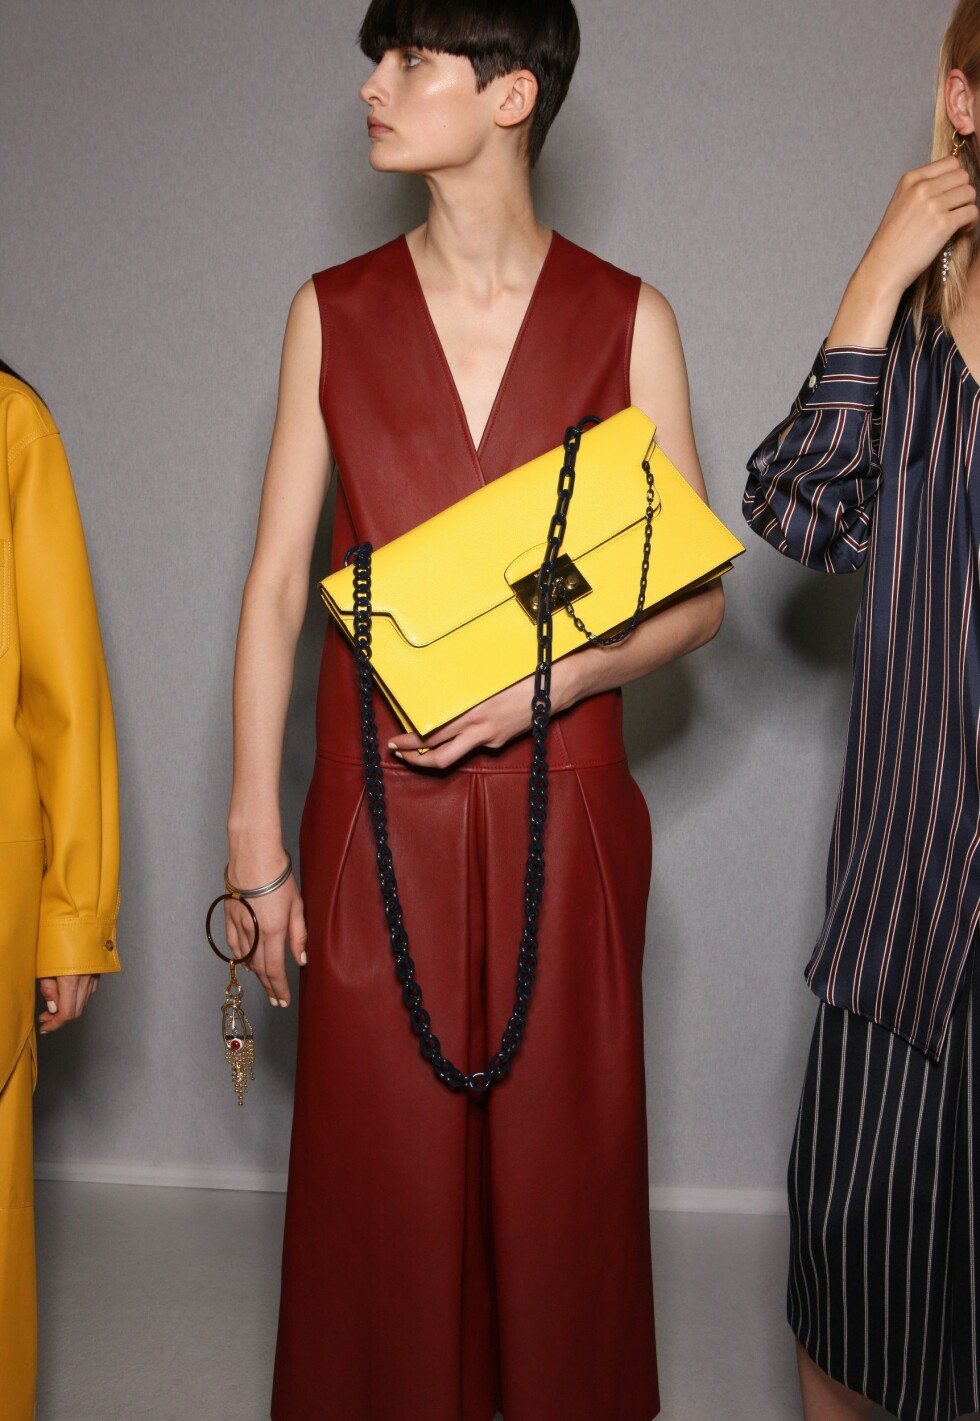 MULBERRY SS17 Foto: Rex Features